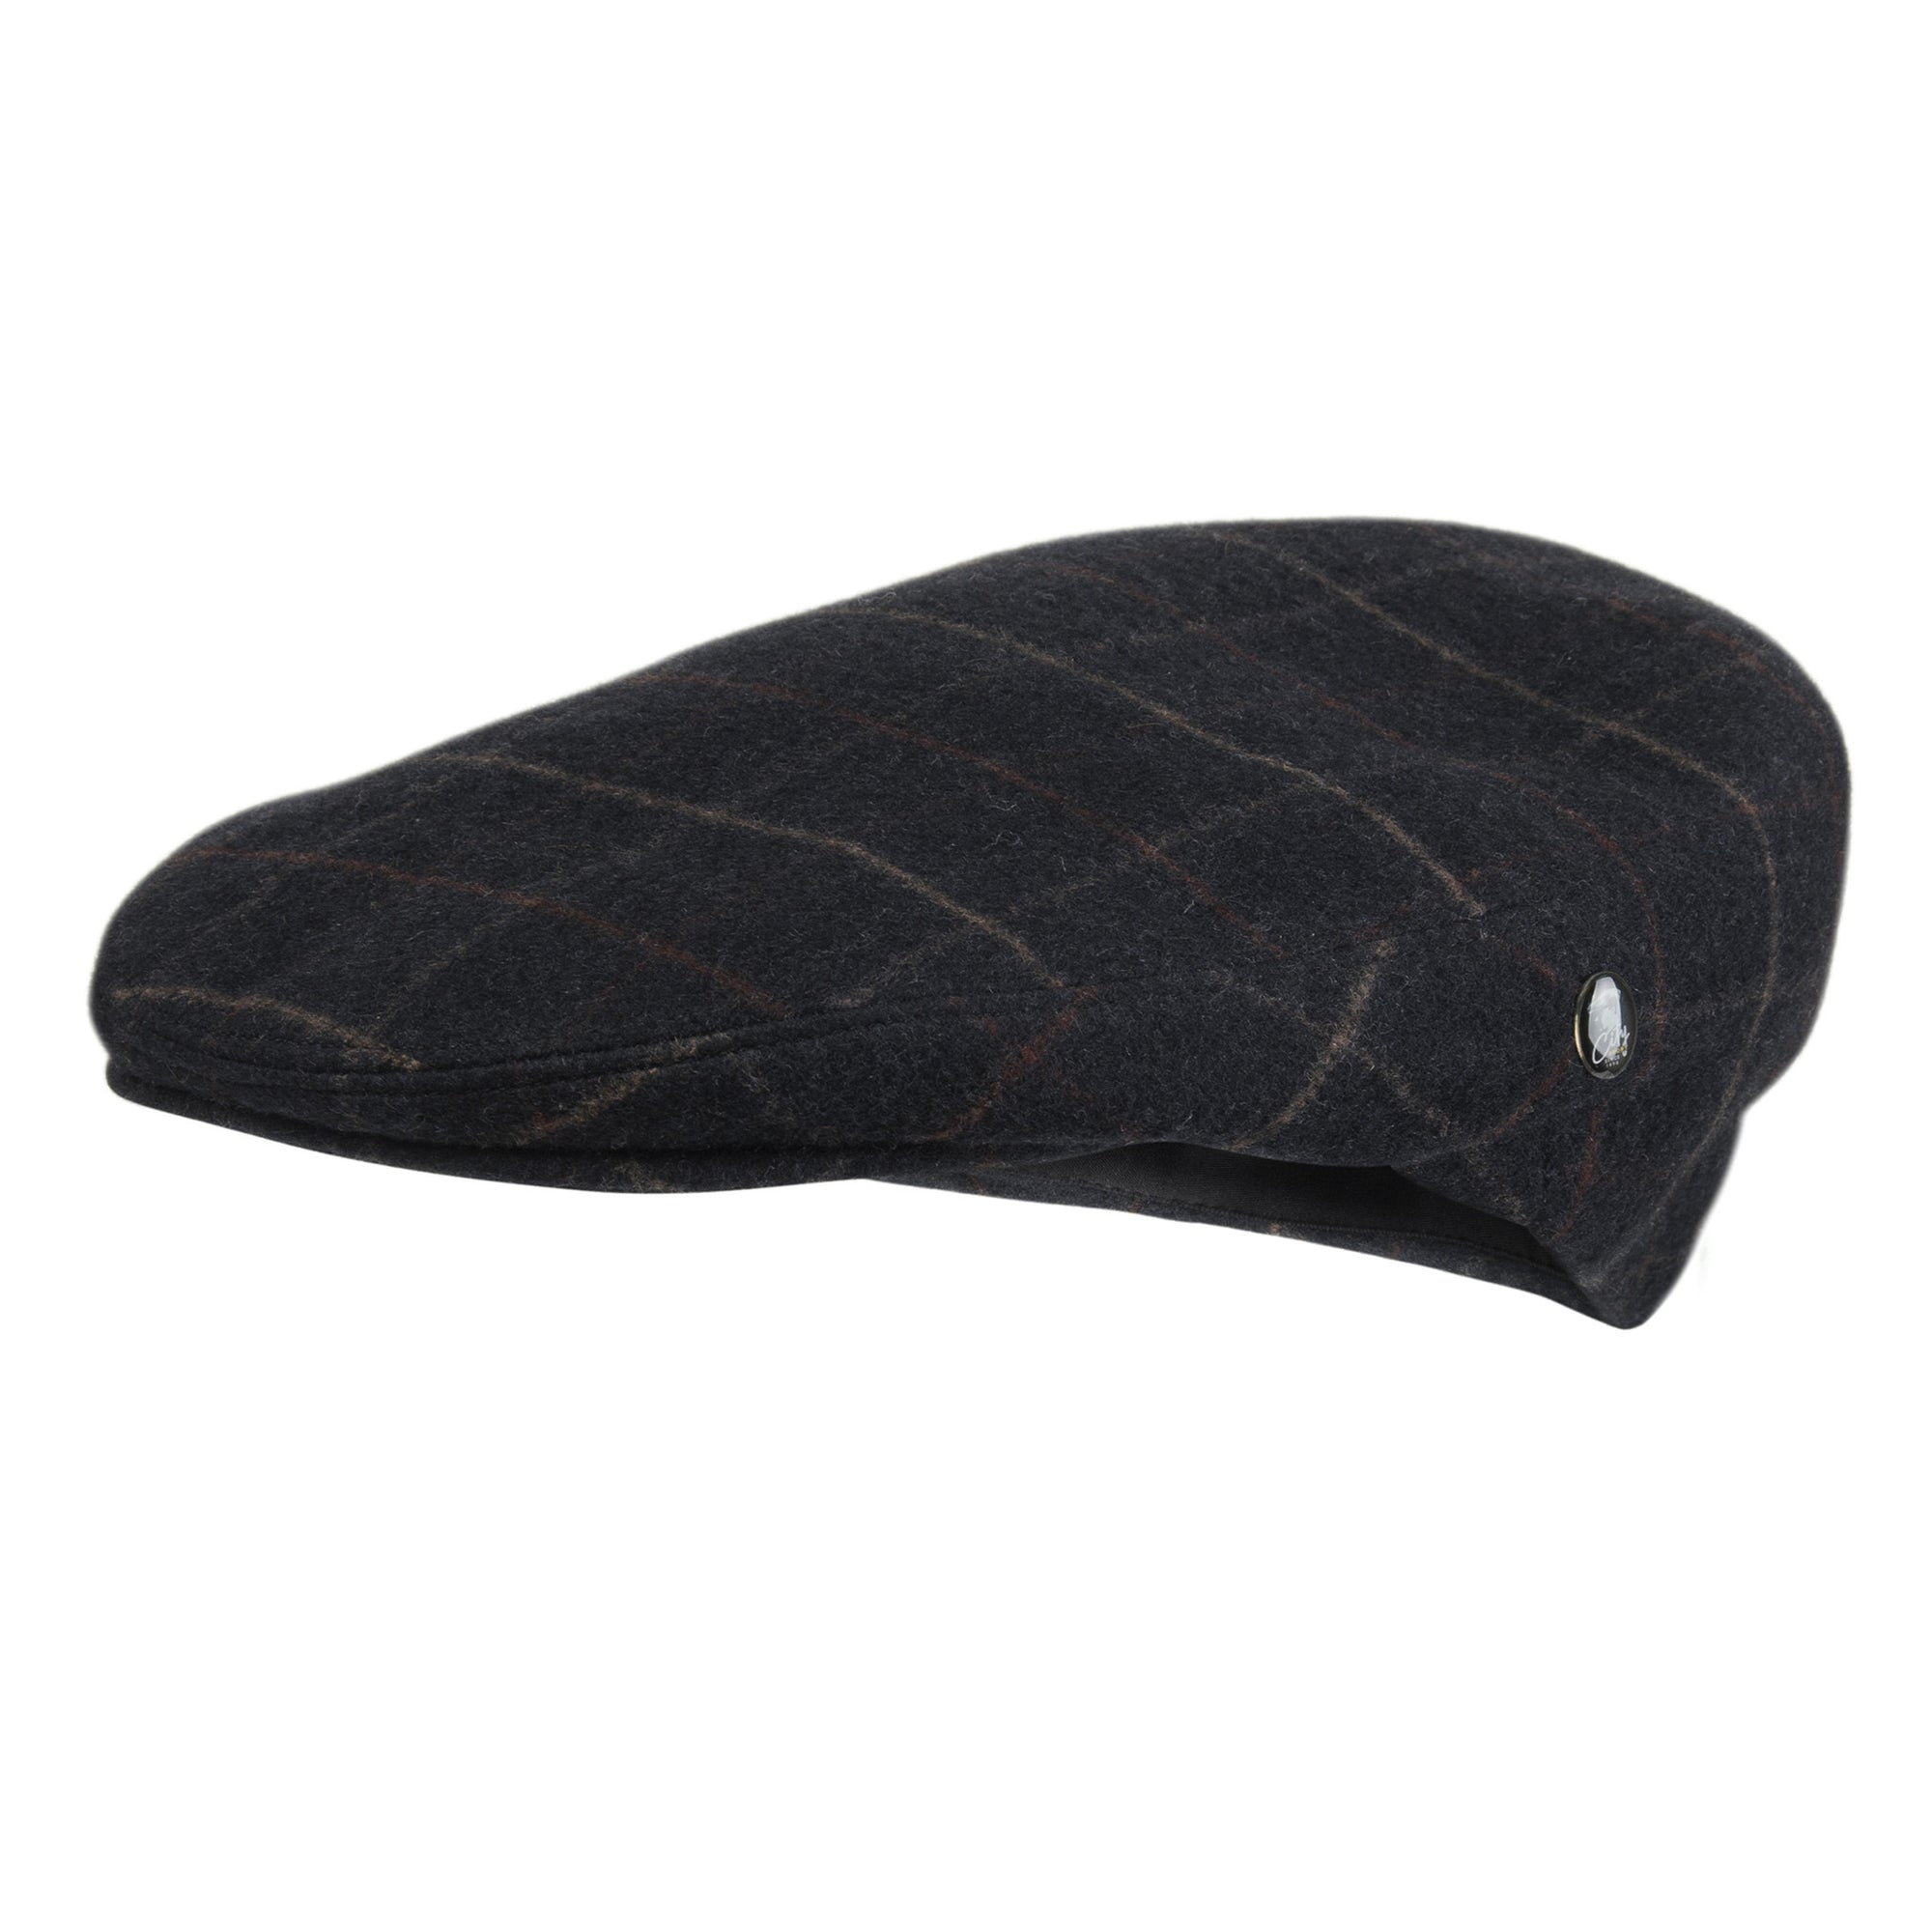 09a0caf7 Navy Blue Check Mens Flat Cap   Loden by City Sport  buy now at The ...